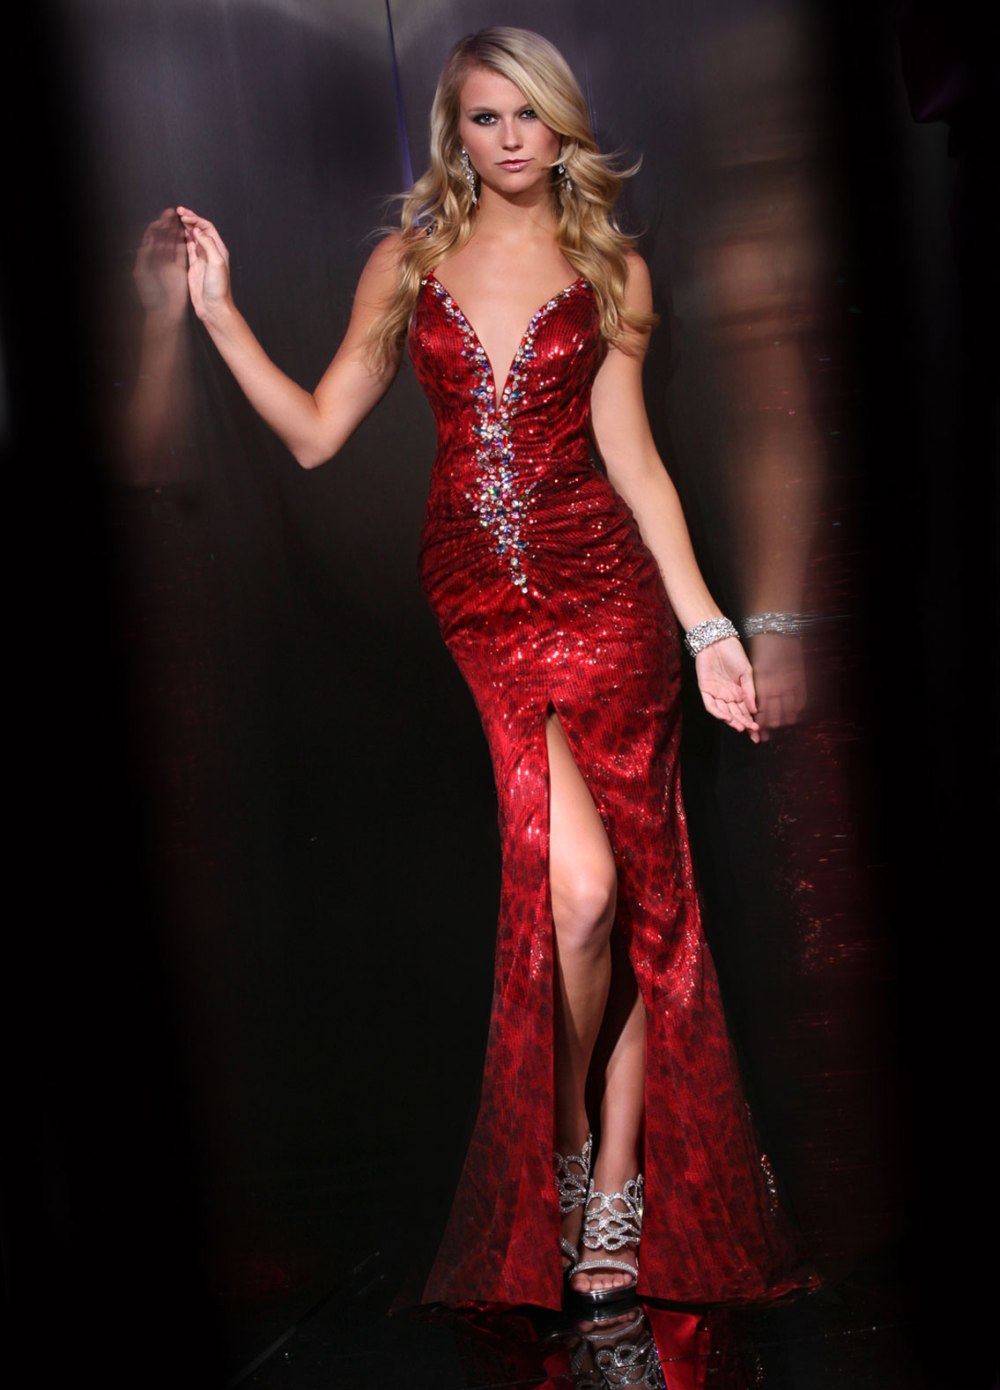 The Extreme red dress 32344